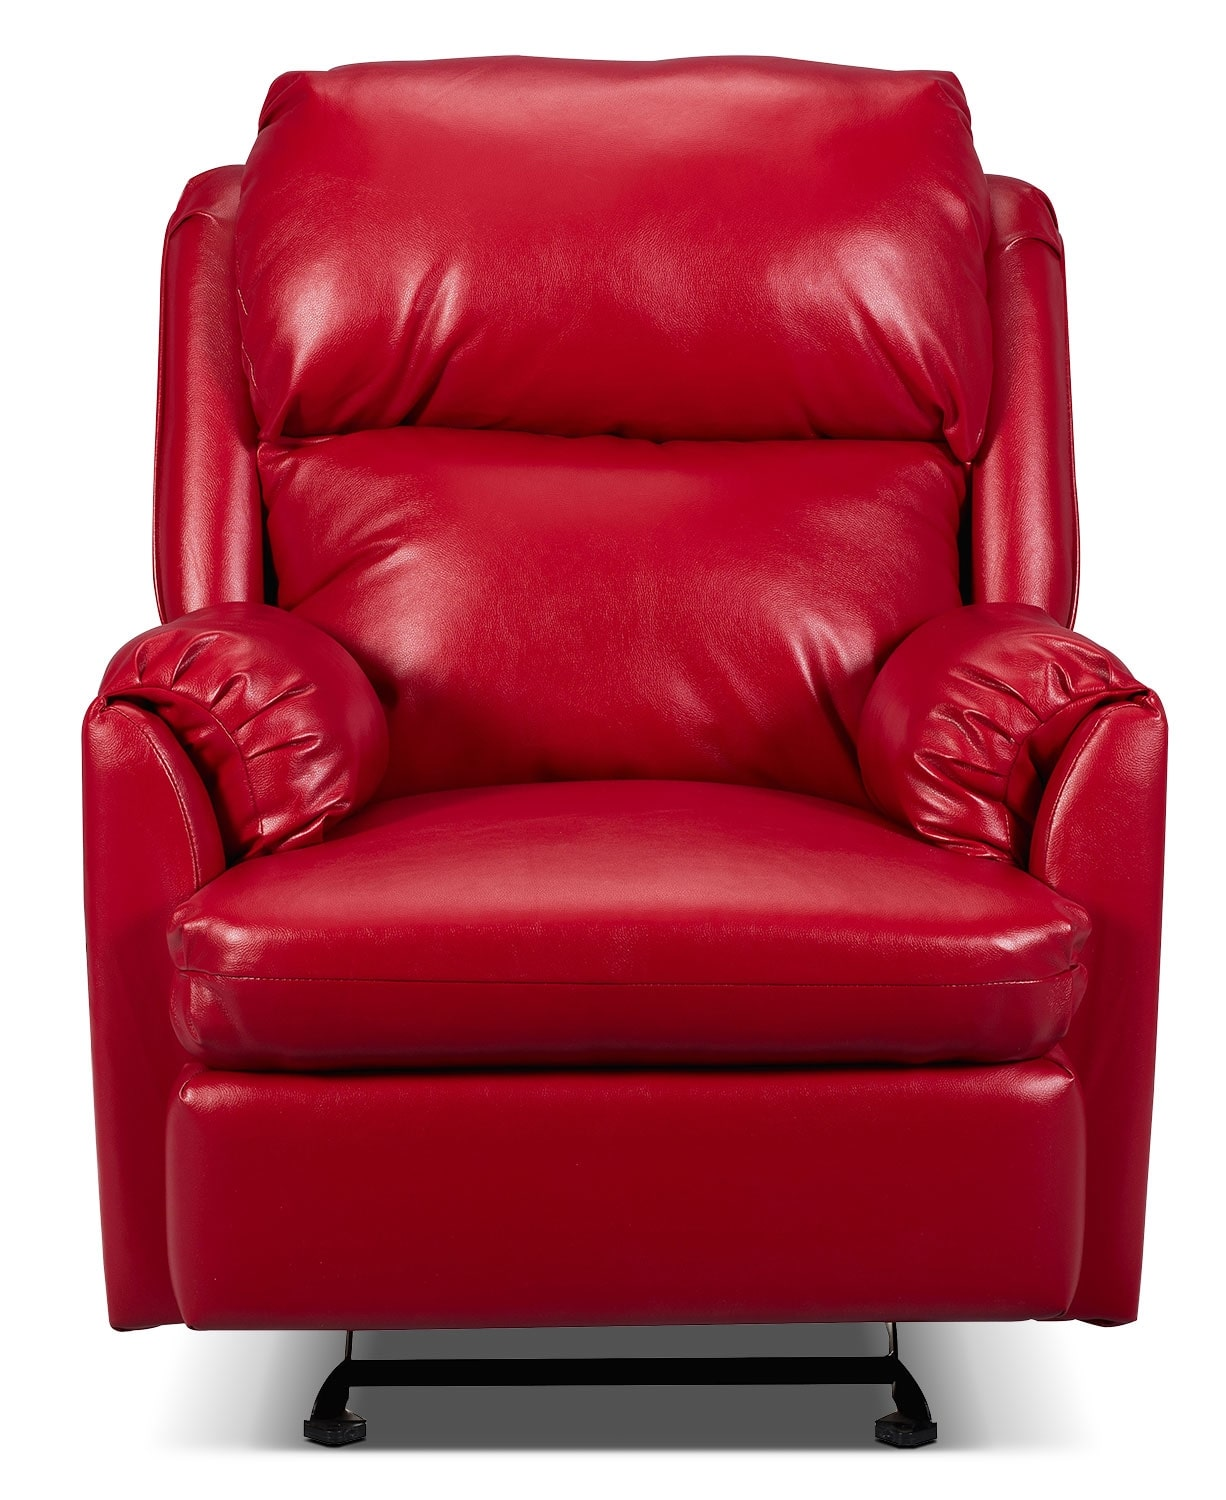 Drogba Faux Leather Power Reclining Chair - Red